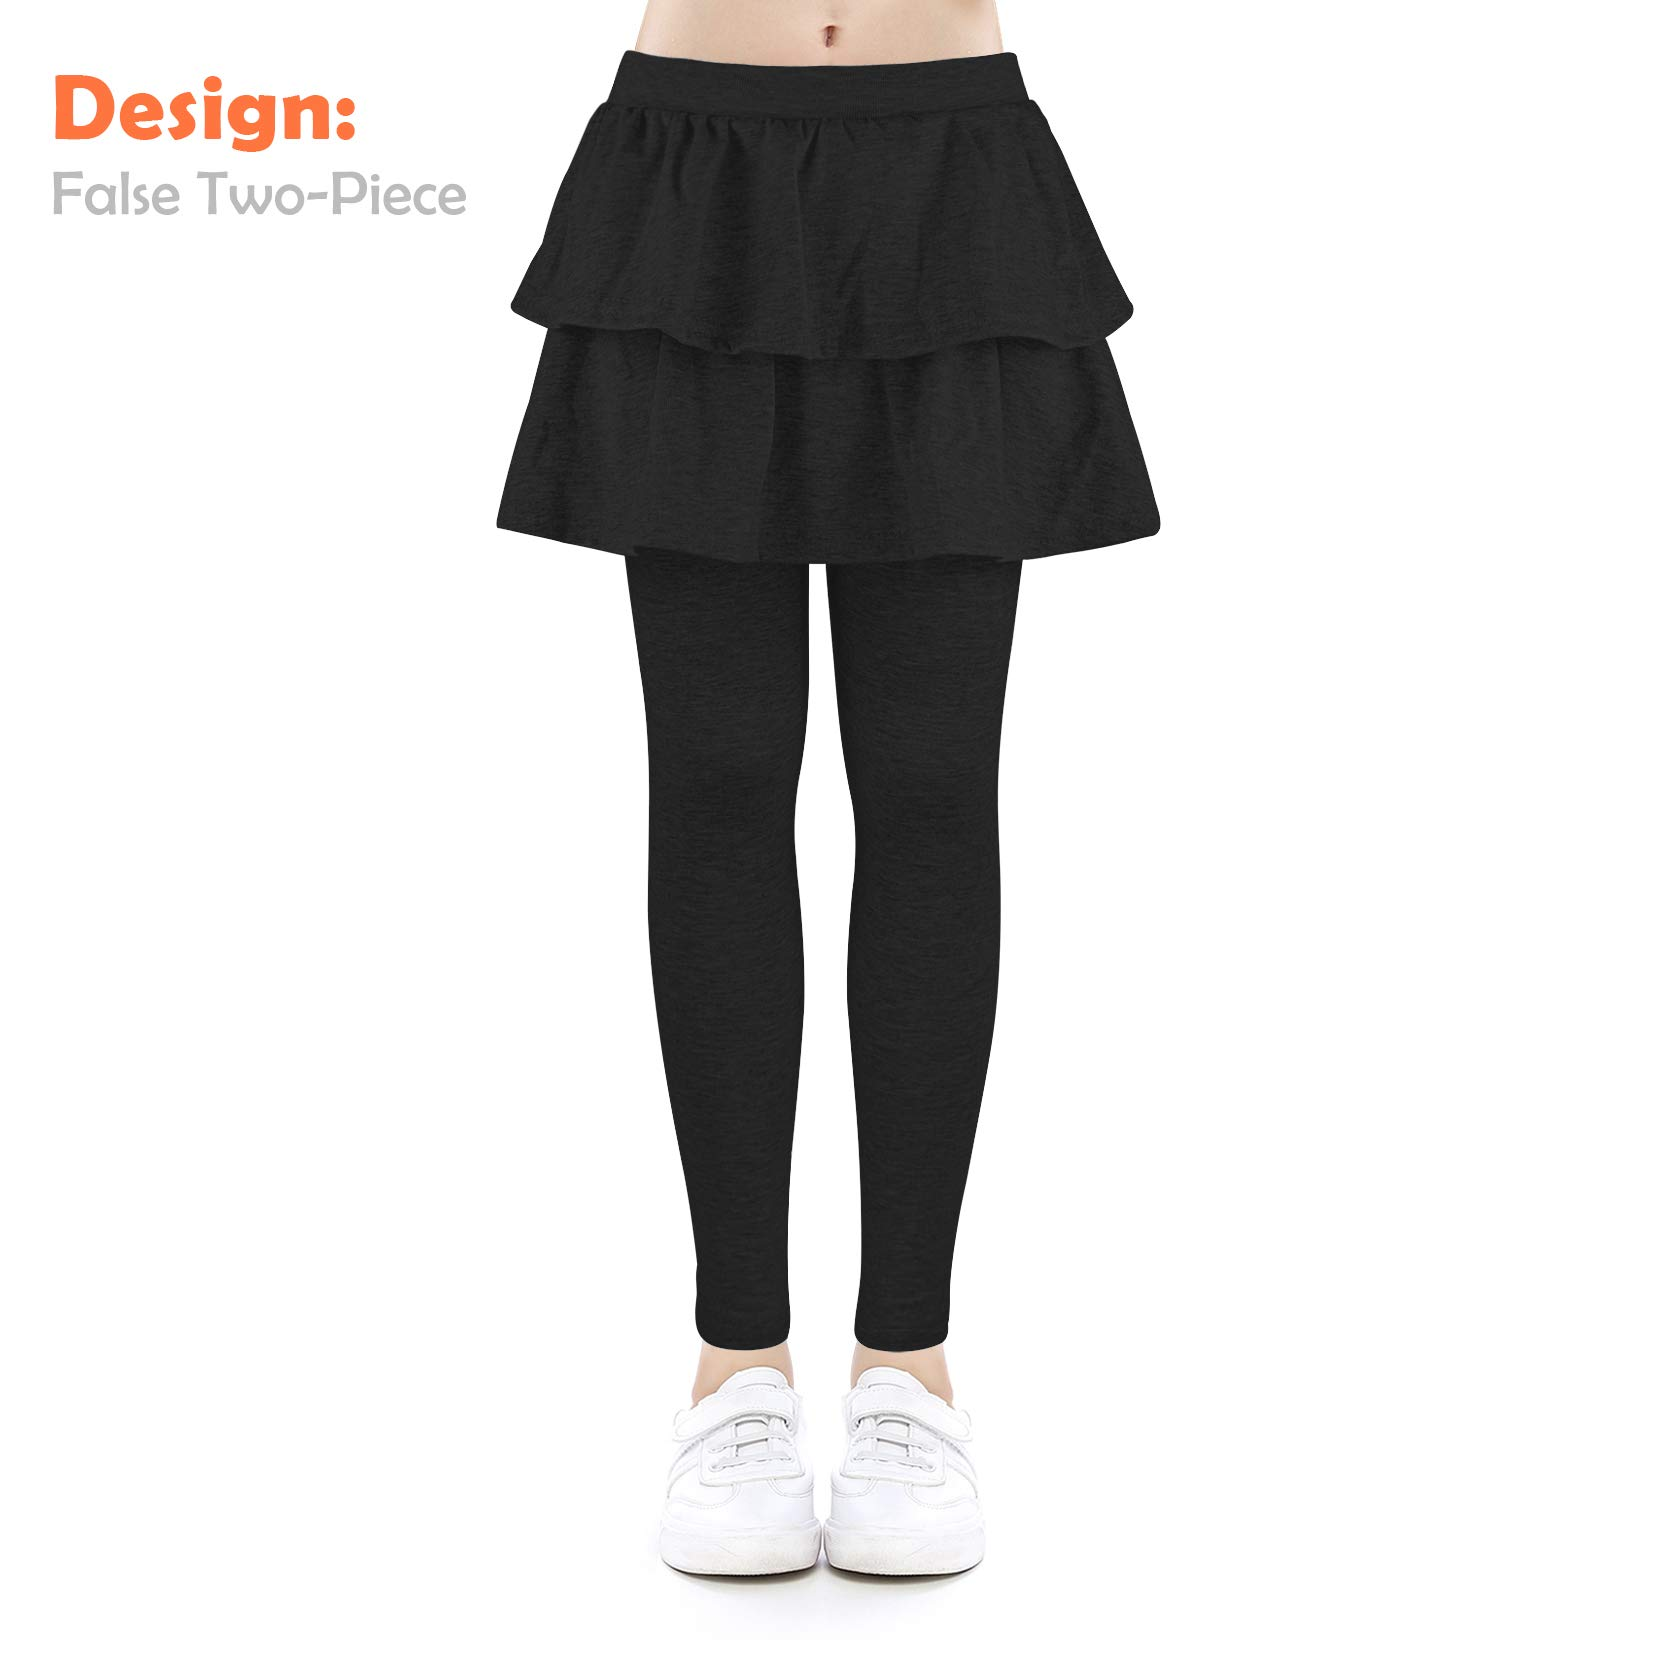 slaixiu Girls Ruffle Skirt Stretchy Leggings Skirtpants 4-11 Years(GP12_Black_120)